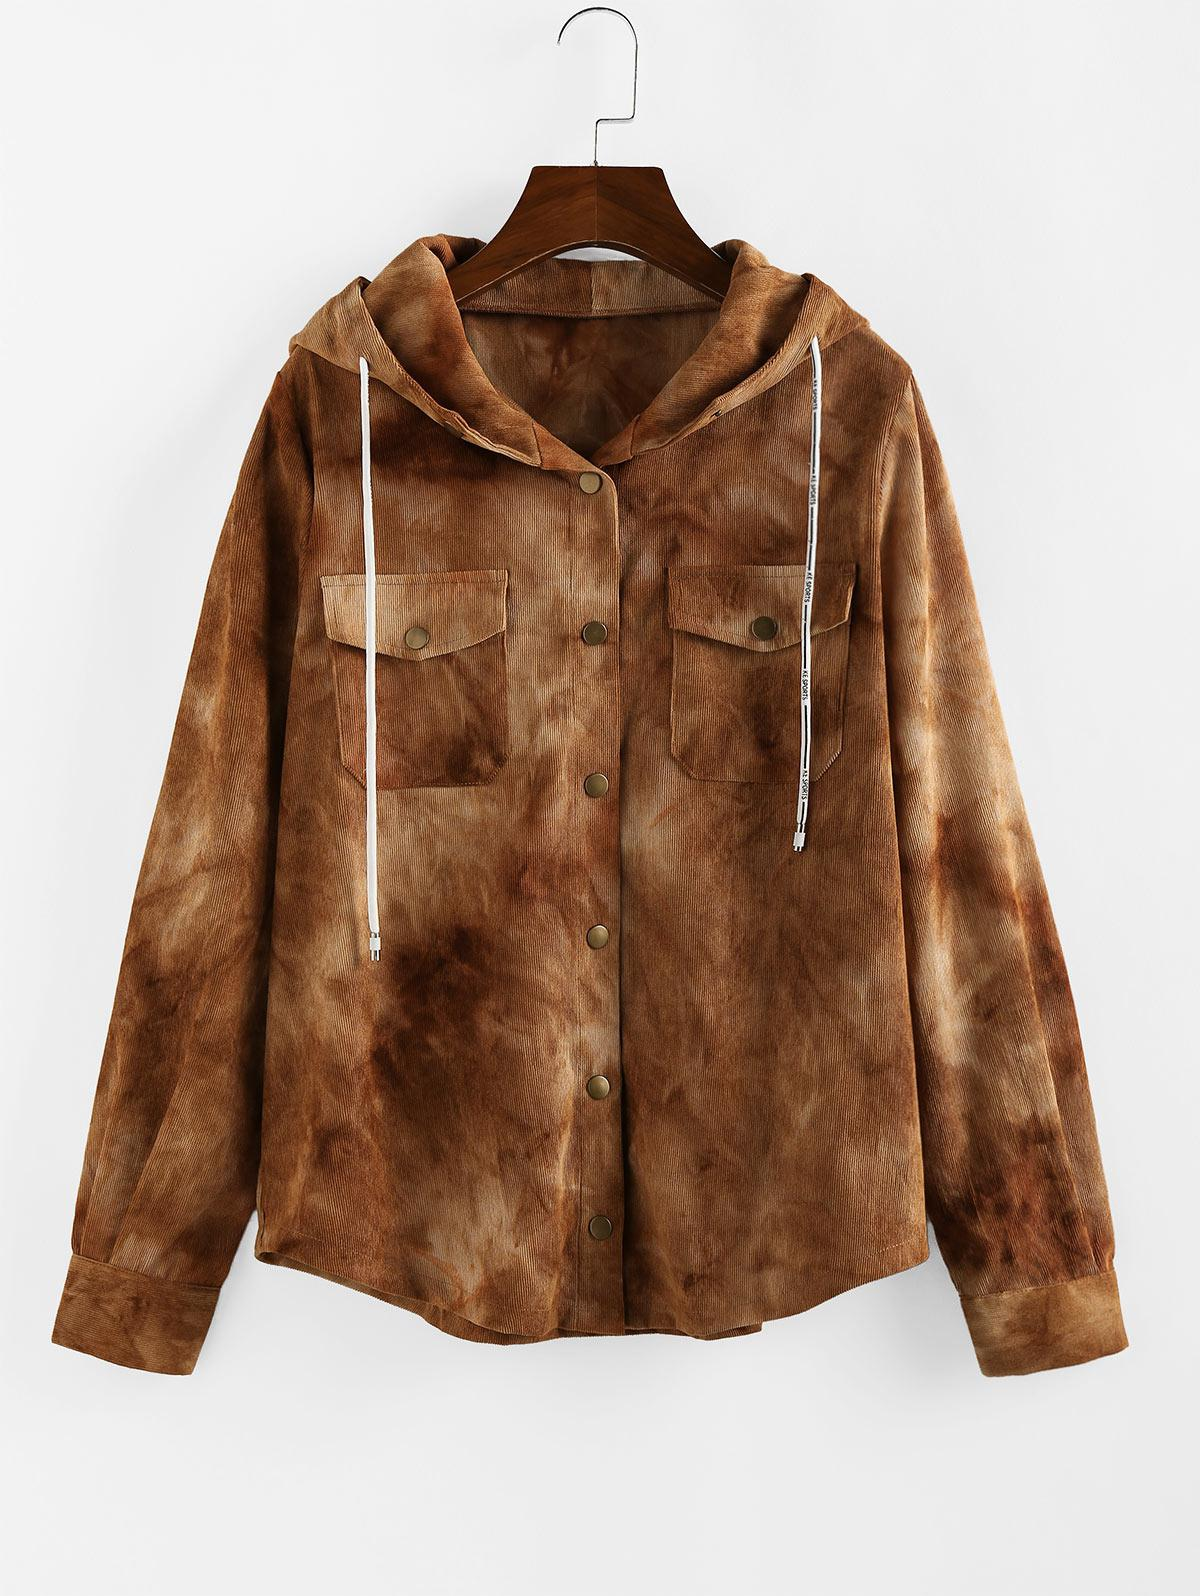 ZAFUL Corduroy Tie Dye Pocket Hooded Jacket